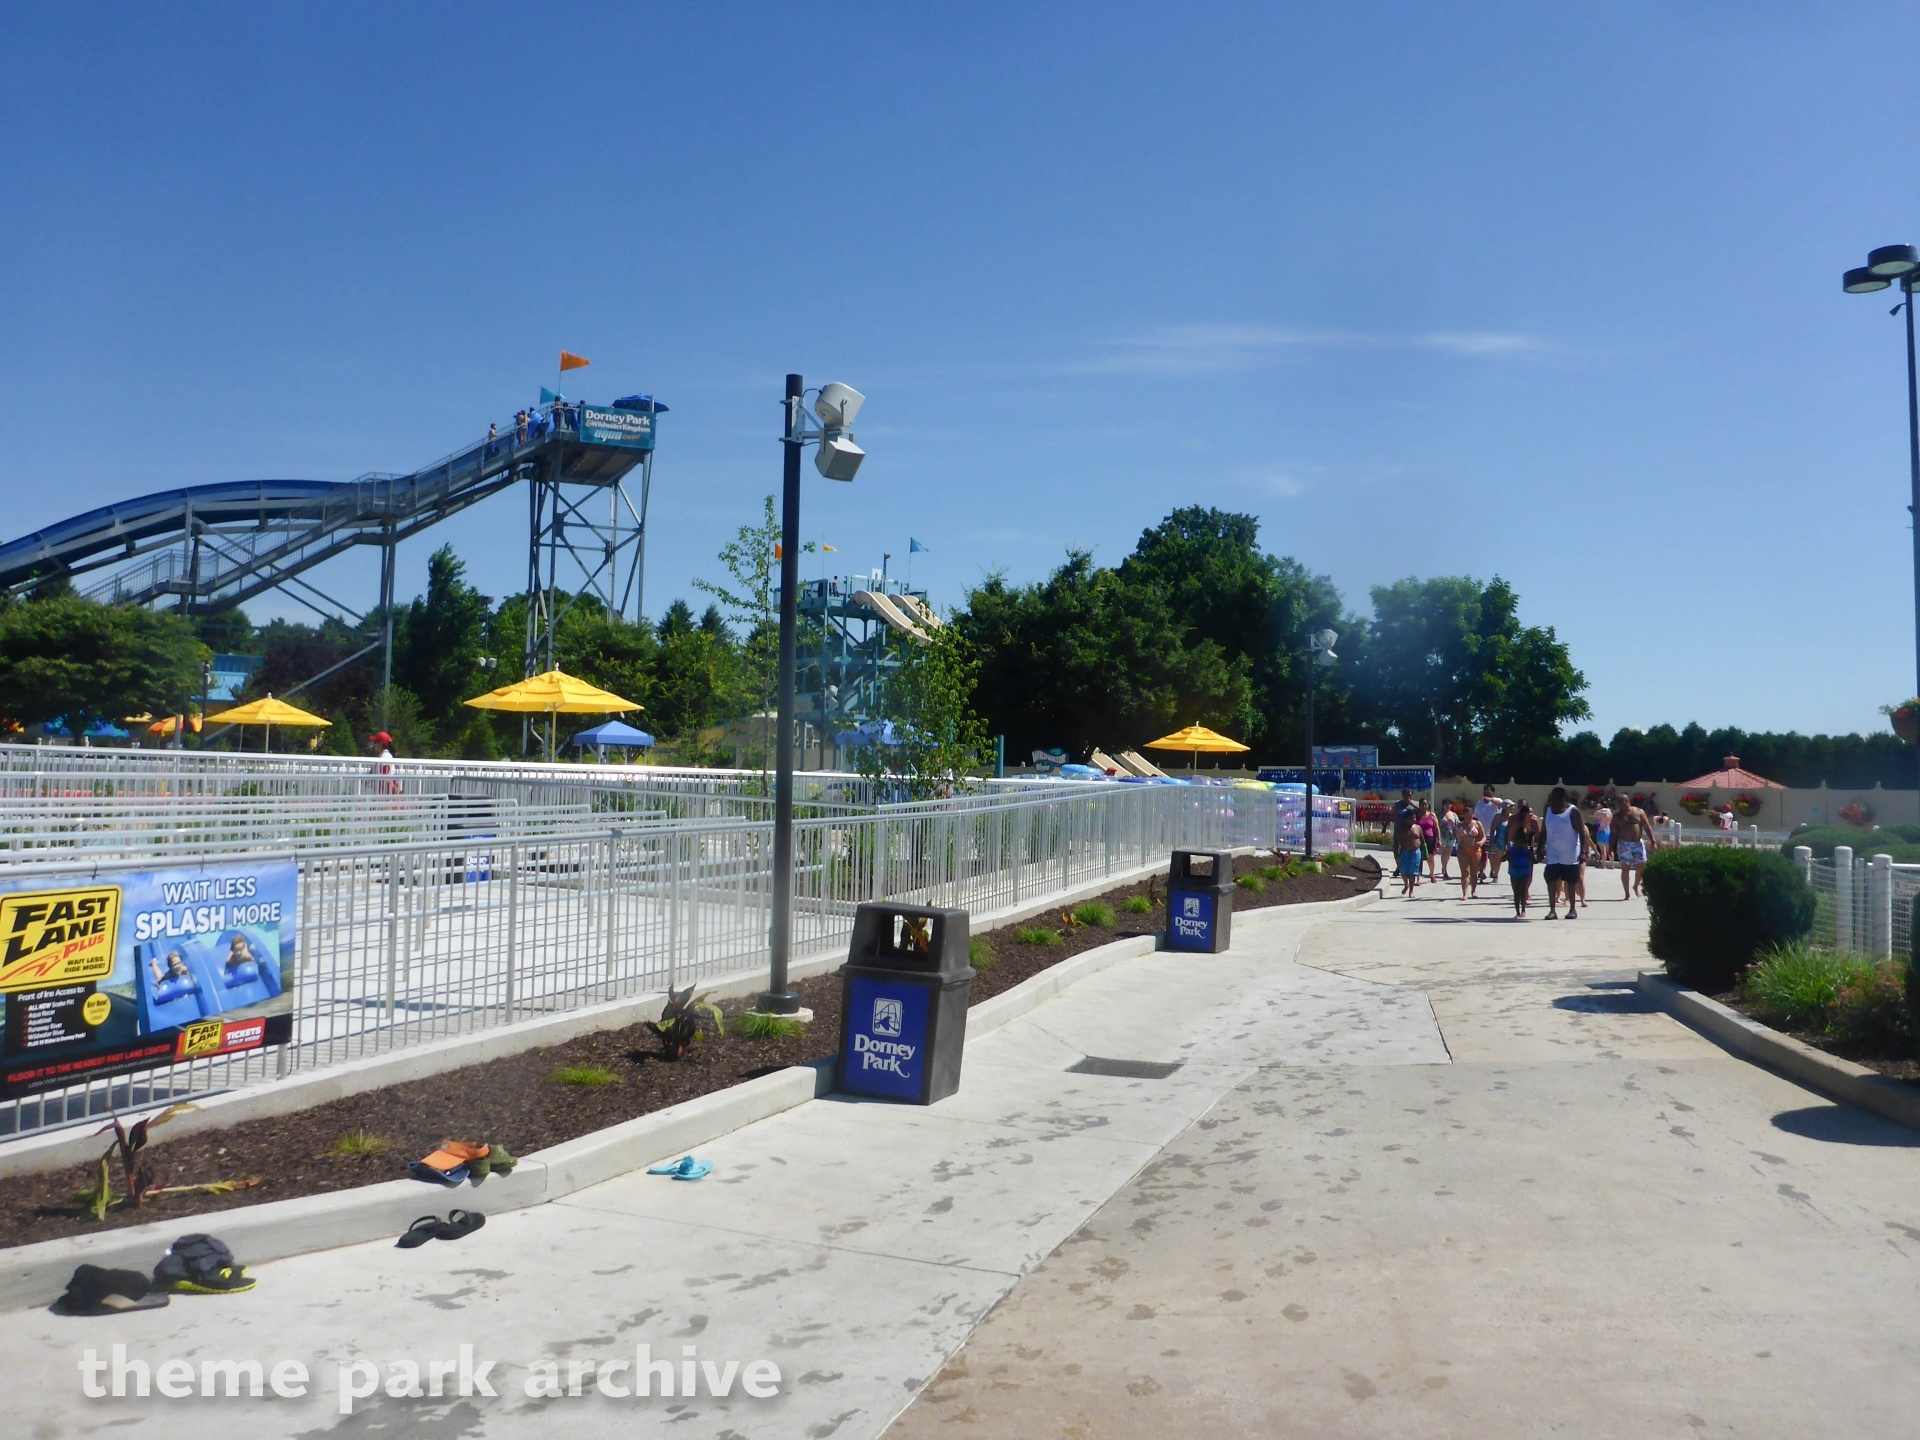 Wildwater Kingdom at Dorney Park